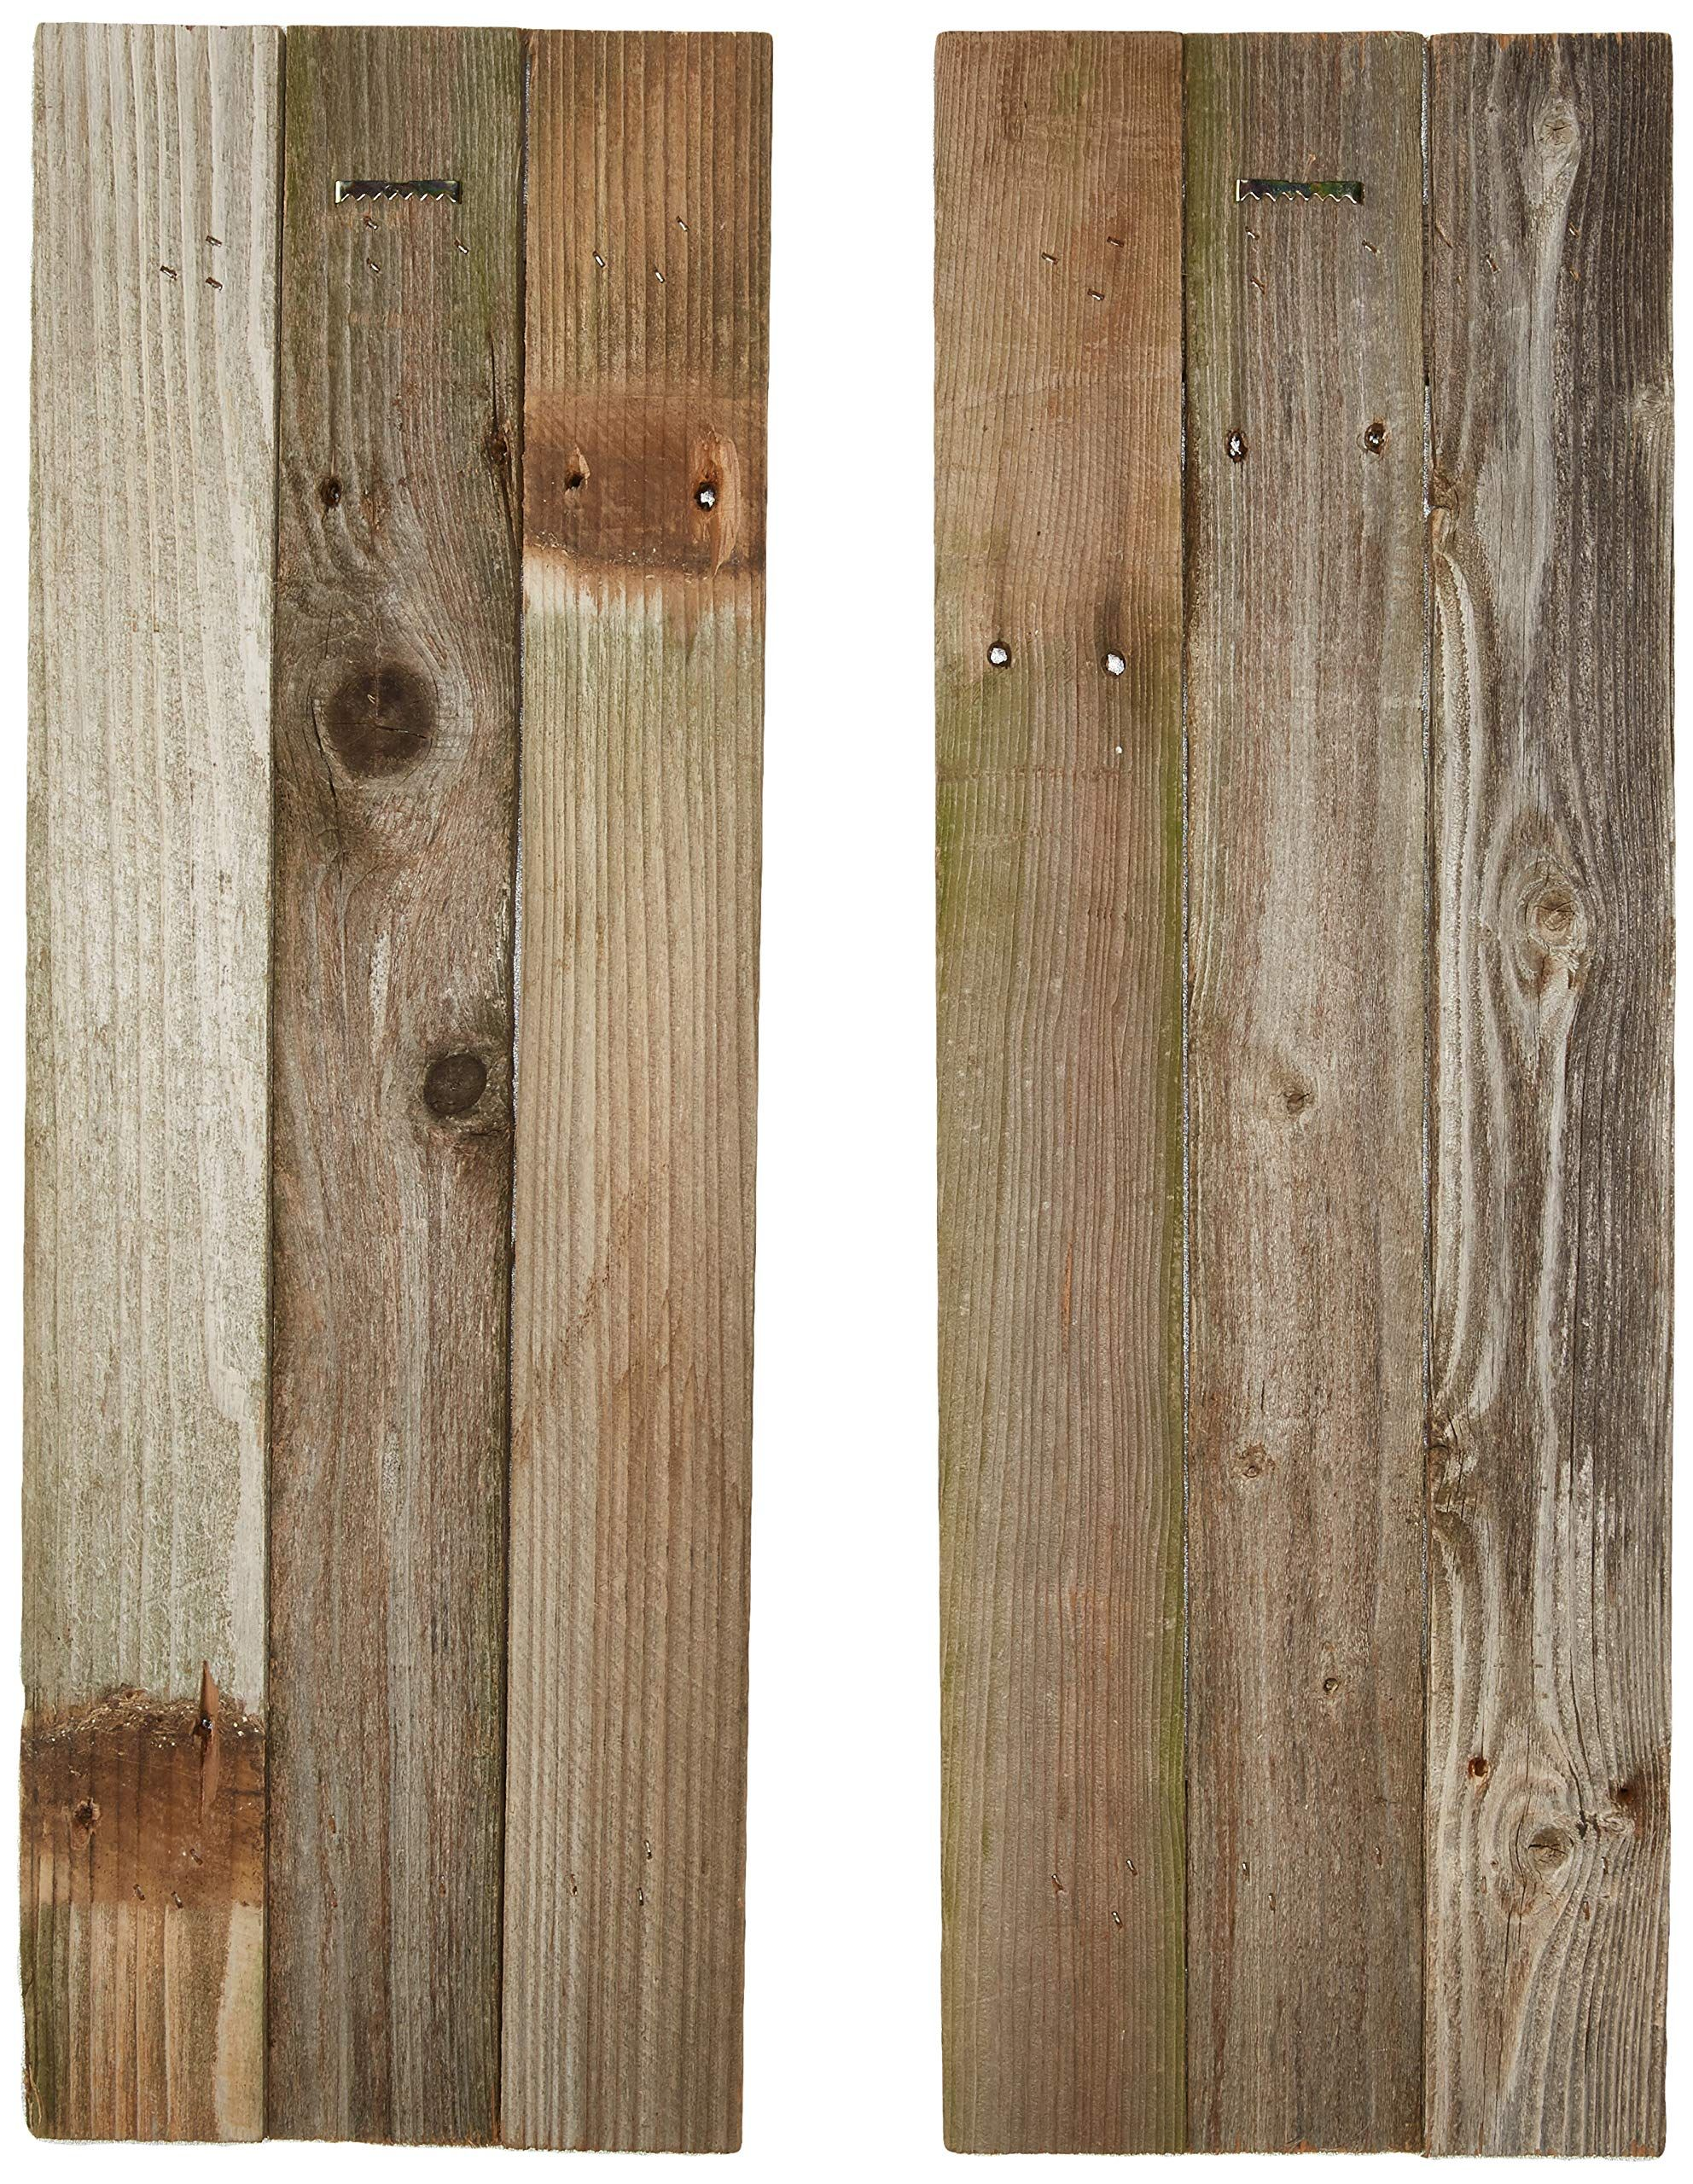 Barn Wood Rustic Decorative Shutter Set Of 2 You Can Discover Out More Details At The Web Link Of The Image This Is An Af In 2020 Barn Wood Decor Barn Wood Rustic